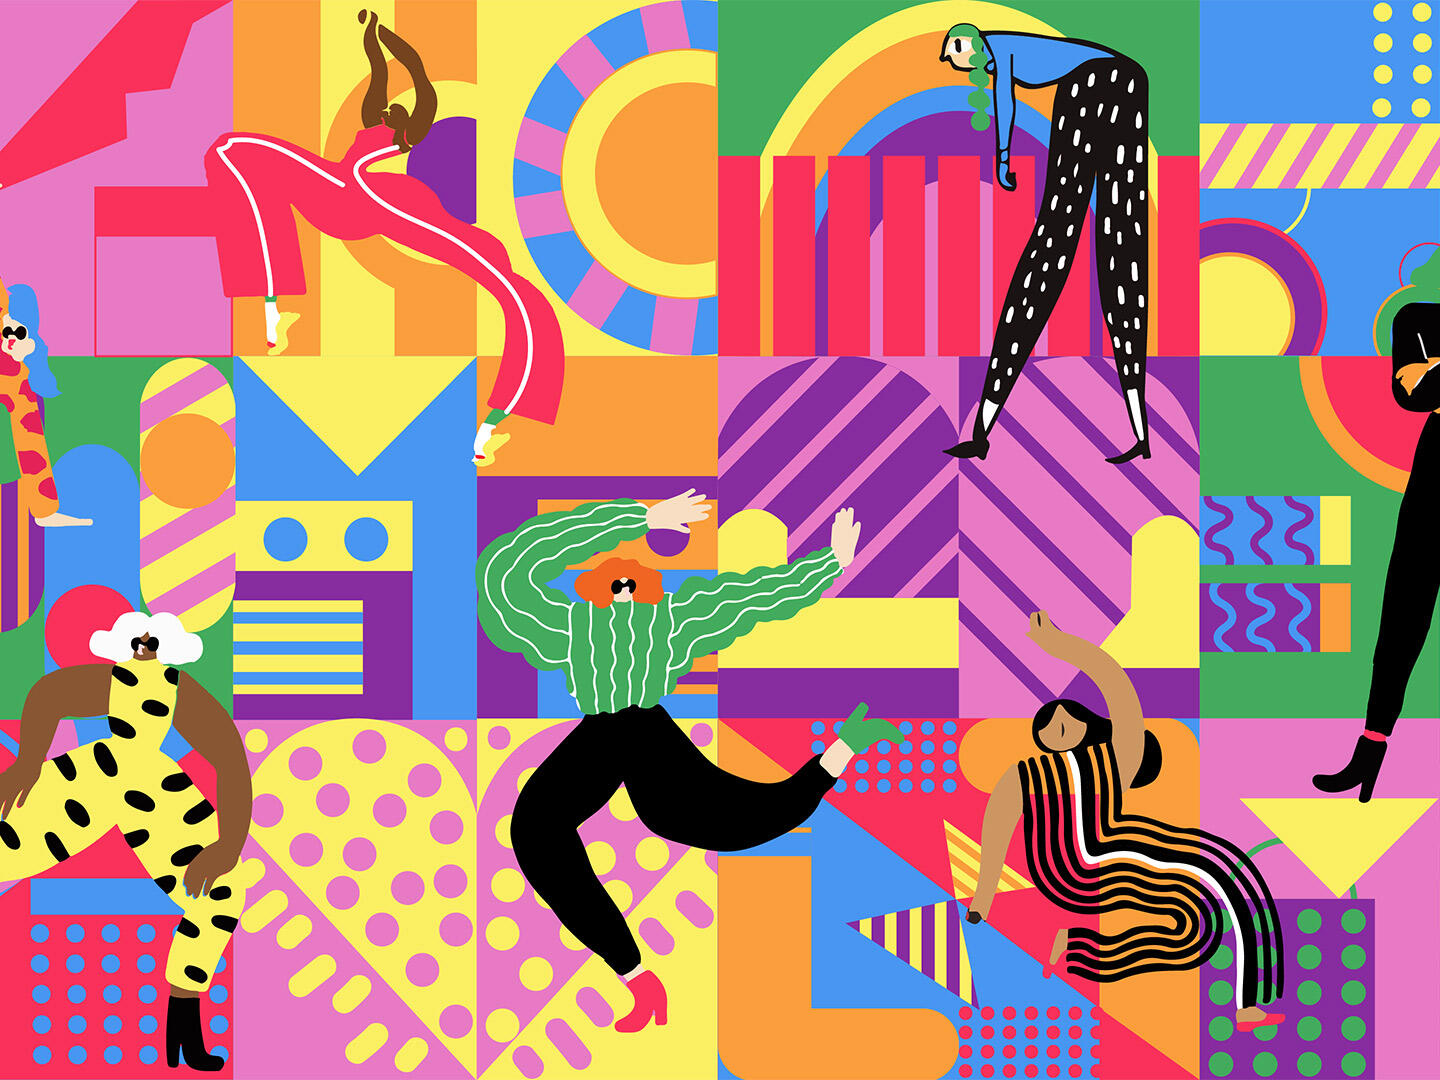 xolve abstract colorful illustration on Pride month